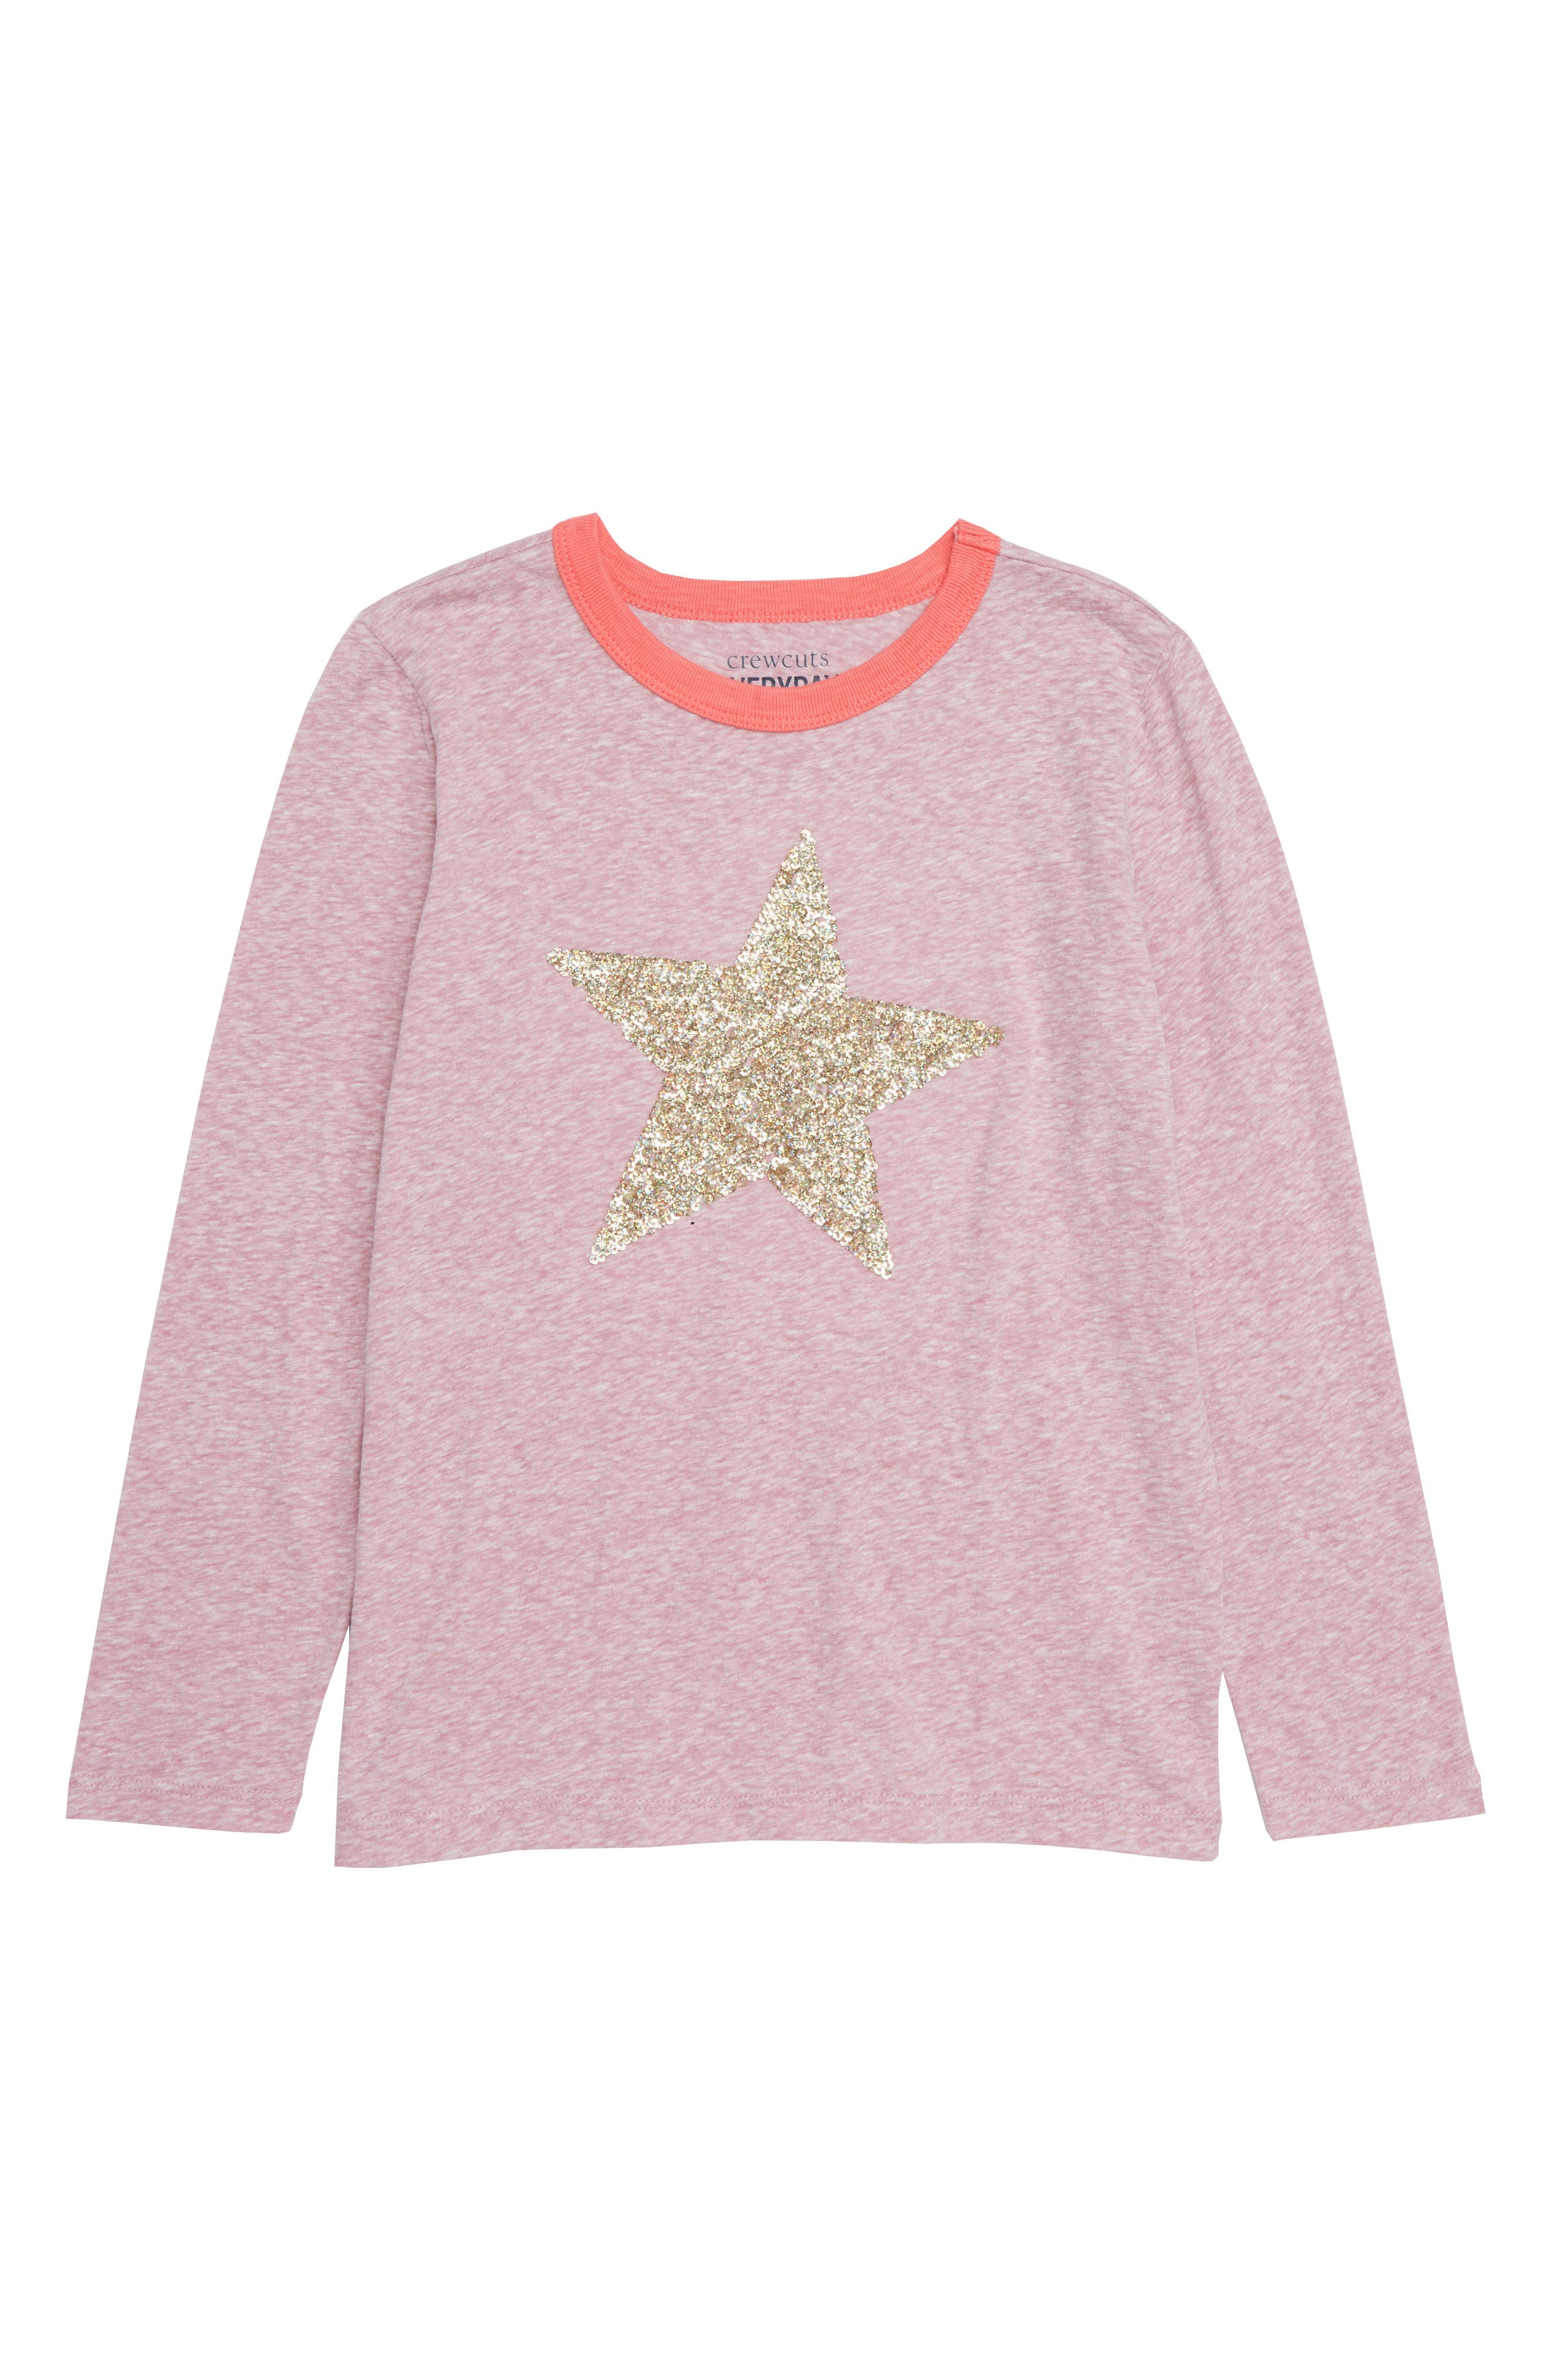 Sequin Star Ringer Tee,                             Main thumbnail 1, color,                             650